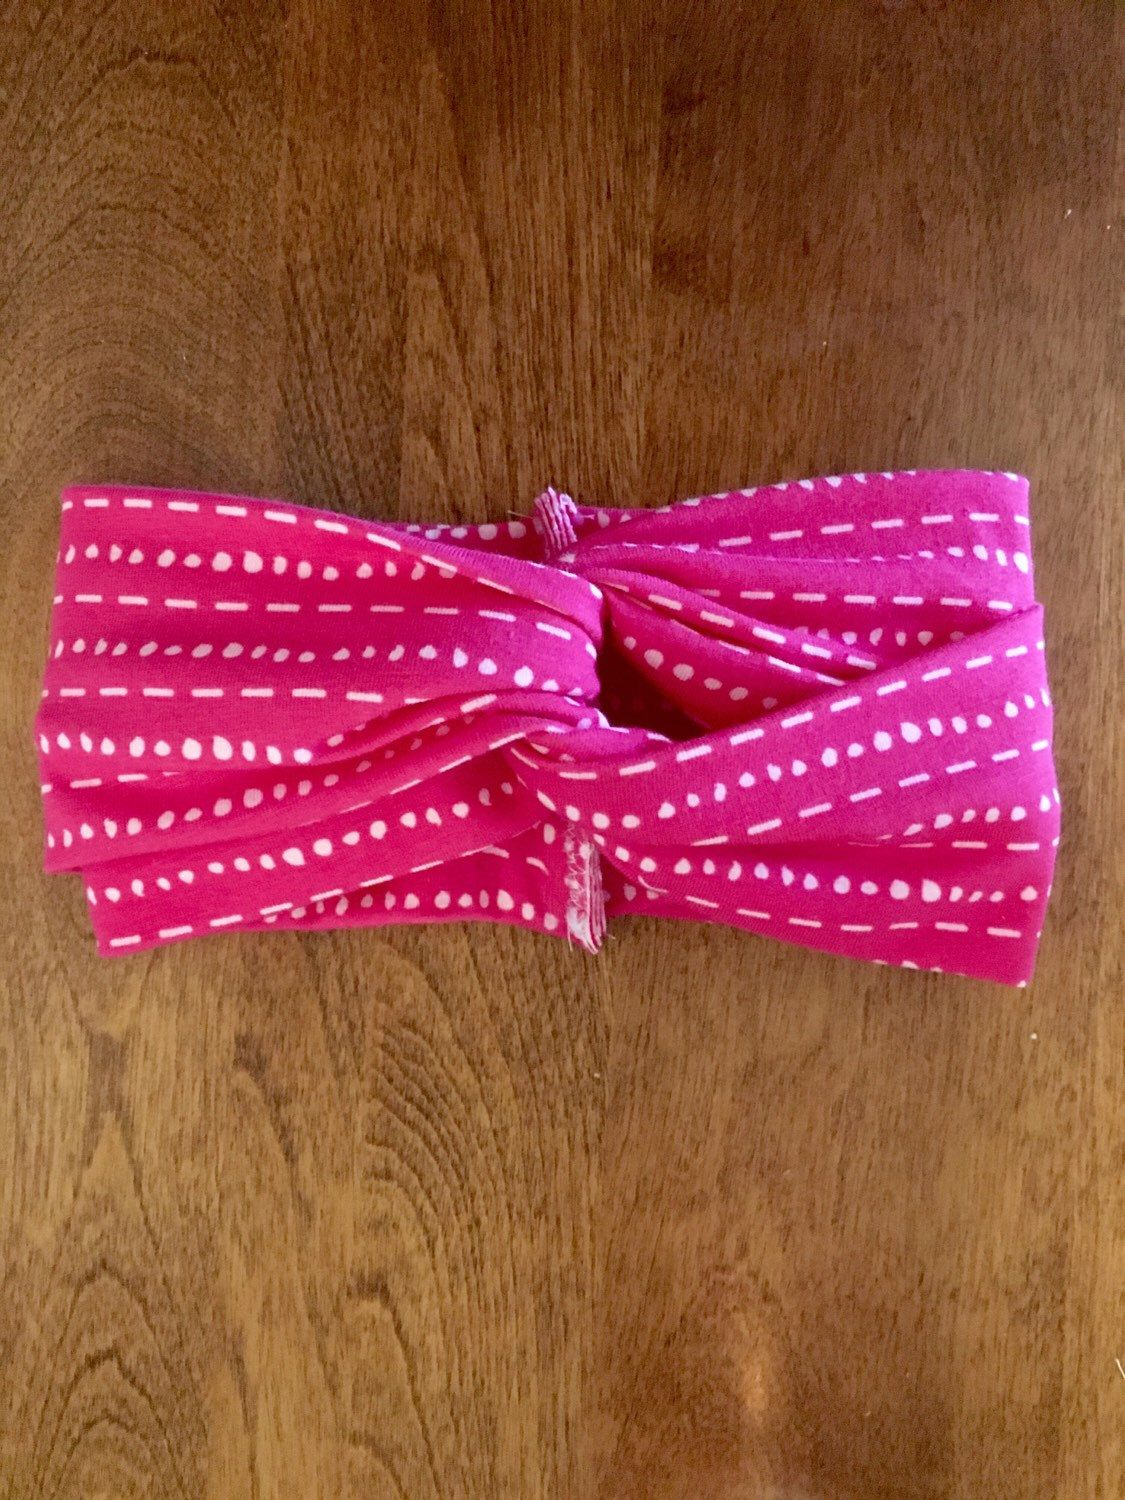 Pink Baby Turban Headband, twisted baby headband, toddler, by HaidlesBoutique on Etsy https://www.etsy.com/listing/263422286/pink-baby-turban-headband-twisted-baby